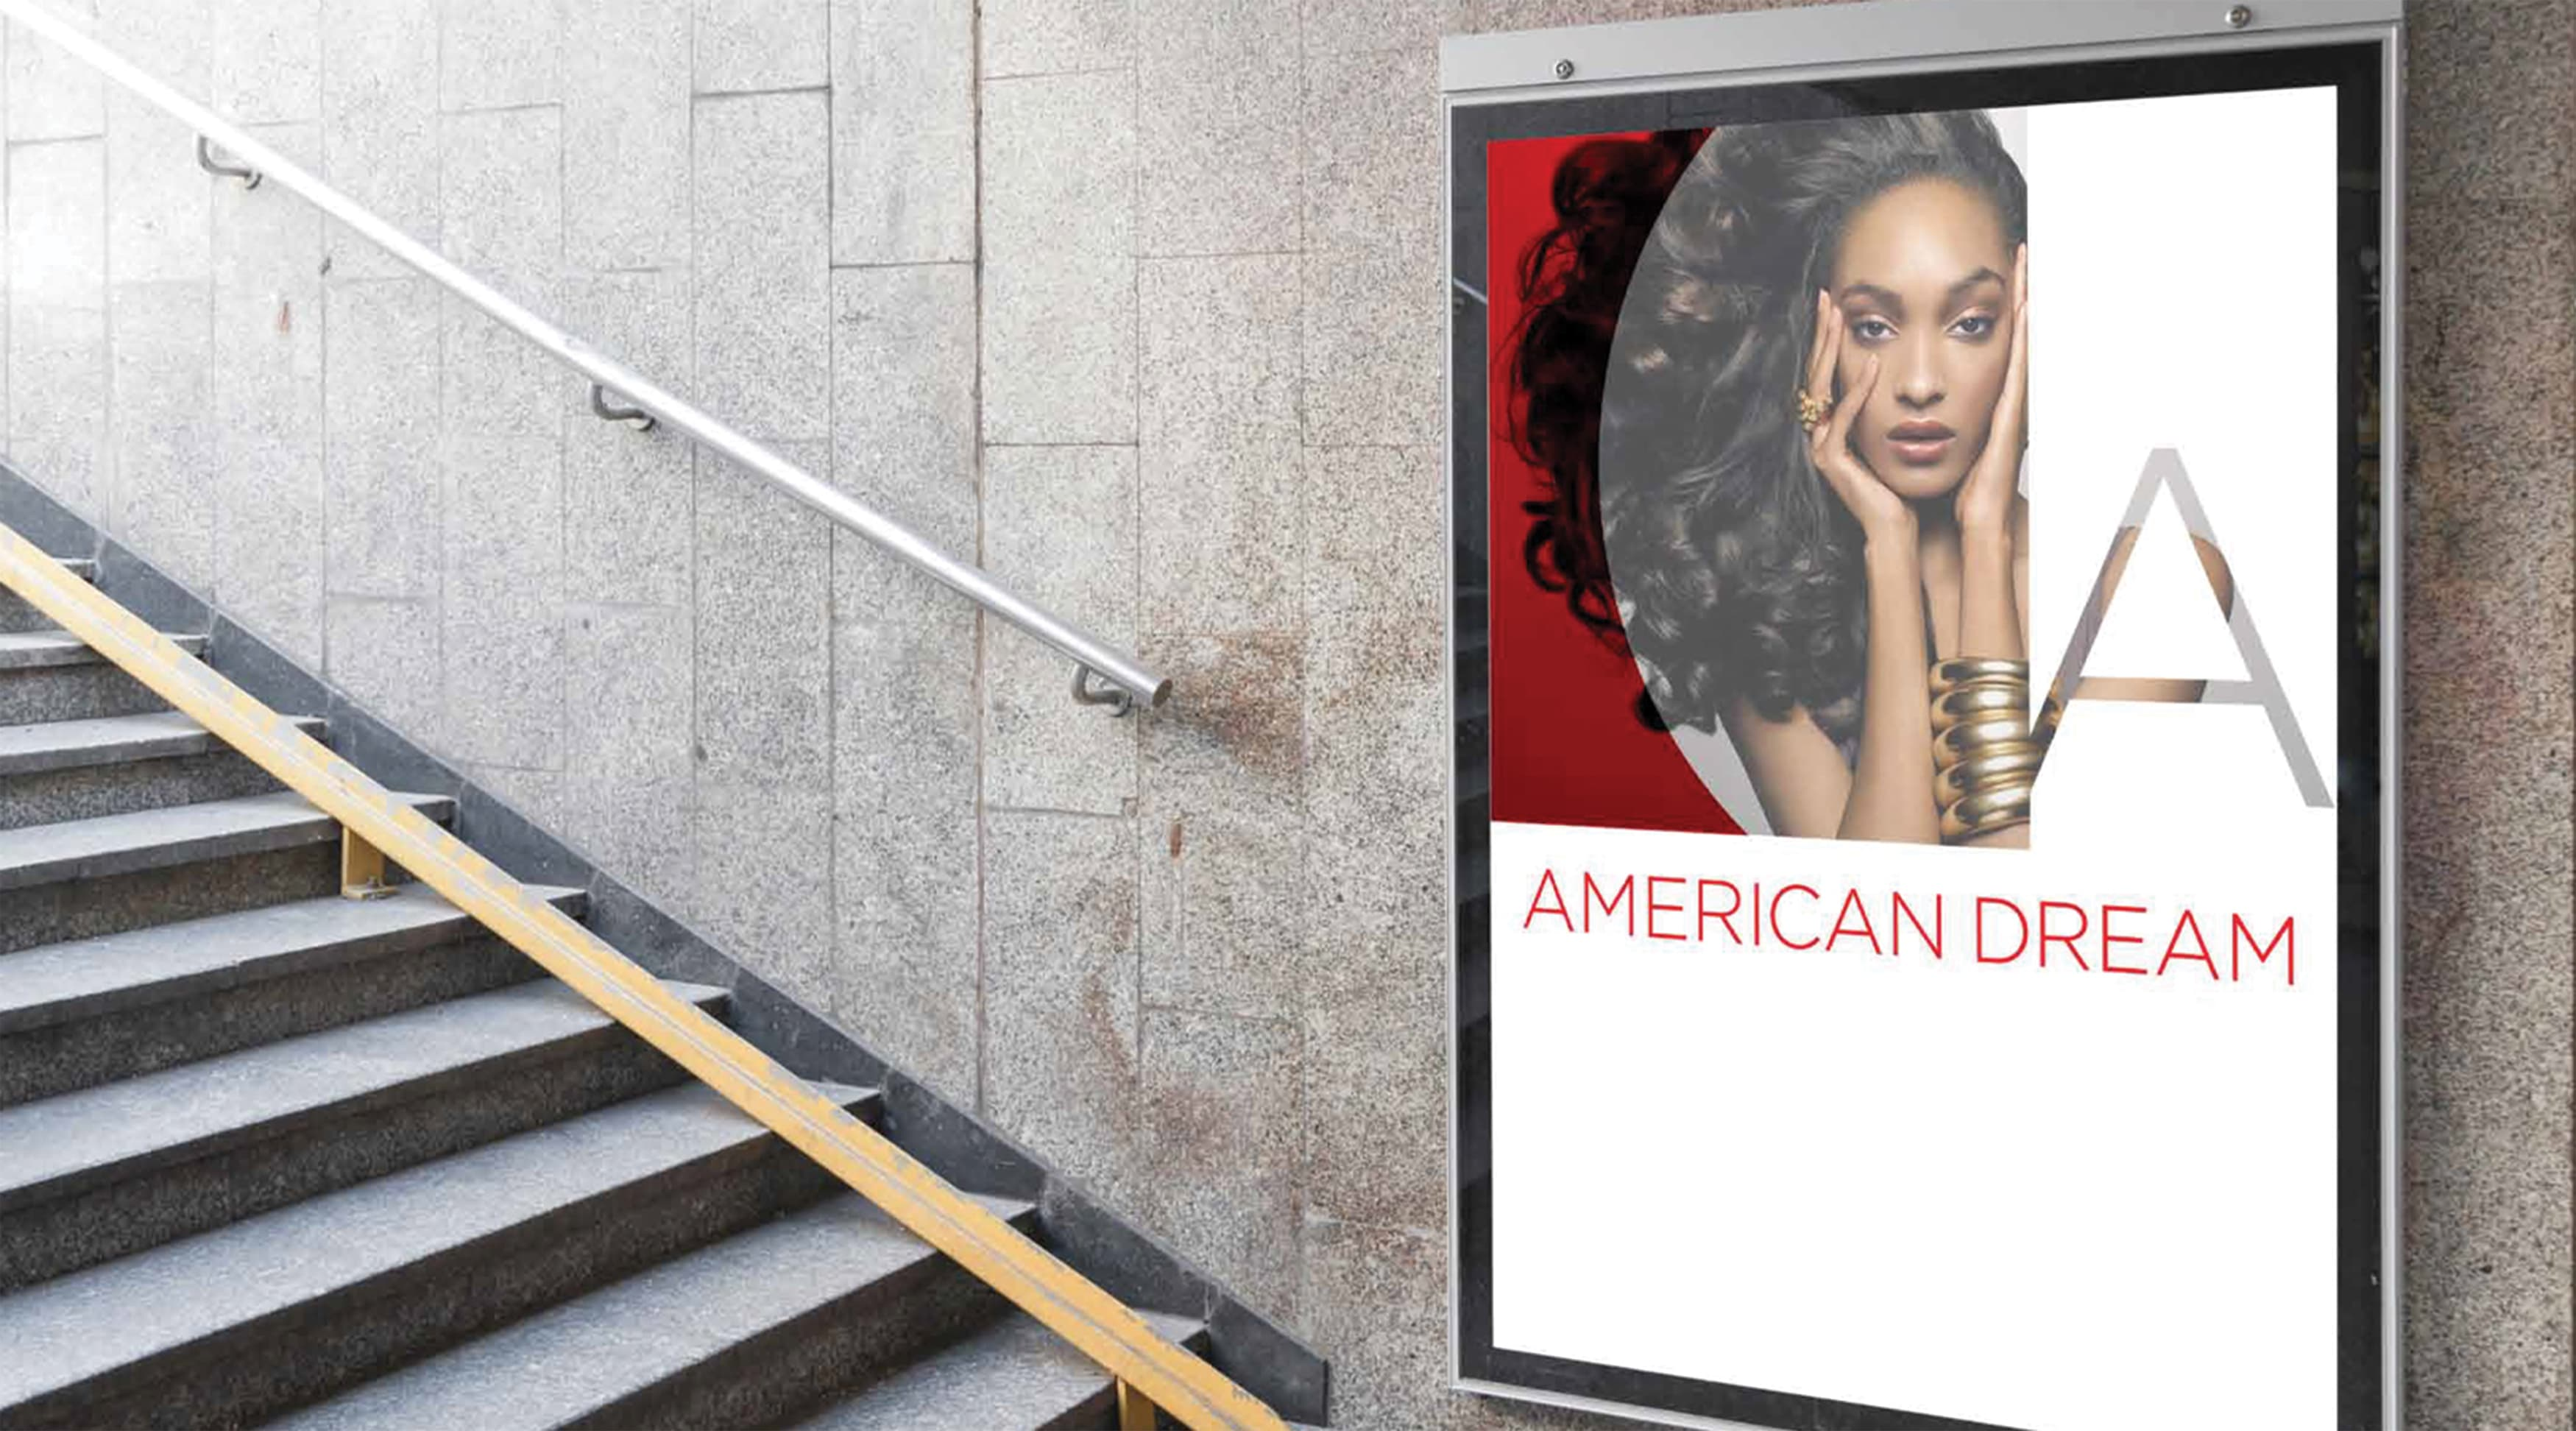 American Dream Retail Project Design in East Rutherford, New Jersey. Branding and Advertising Design.